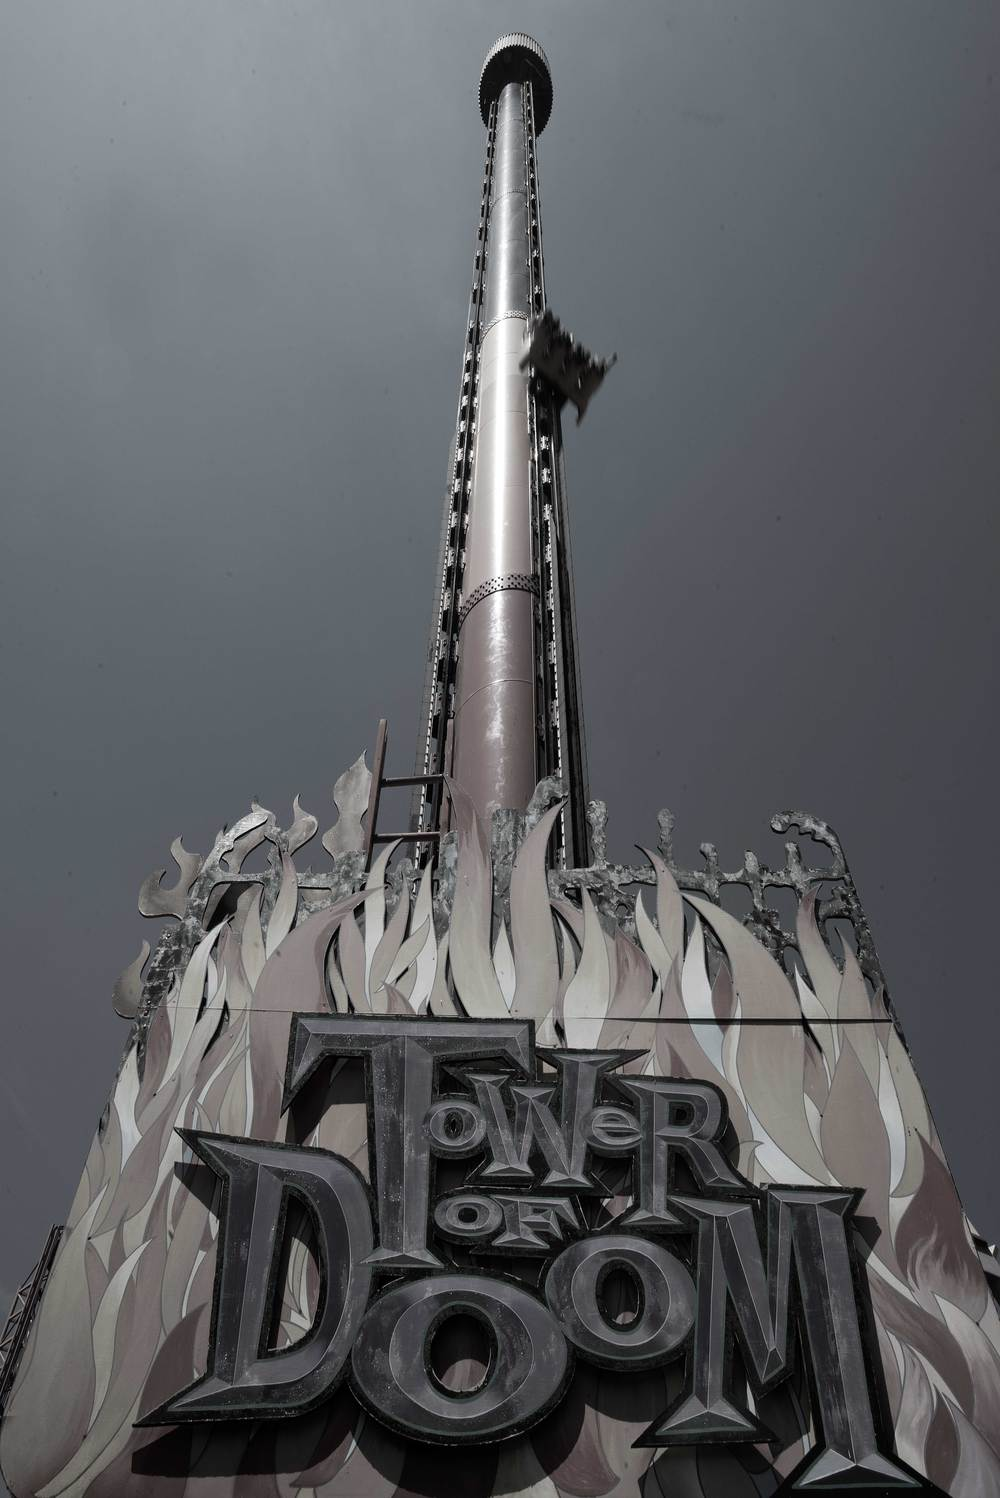 Elitches - the Tower of Doom